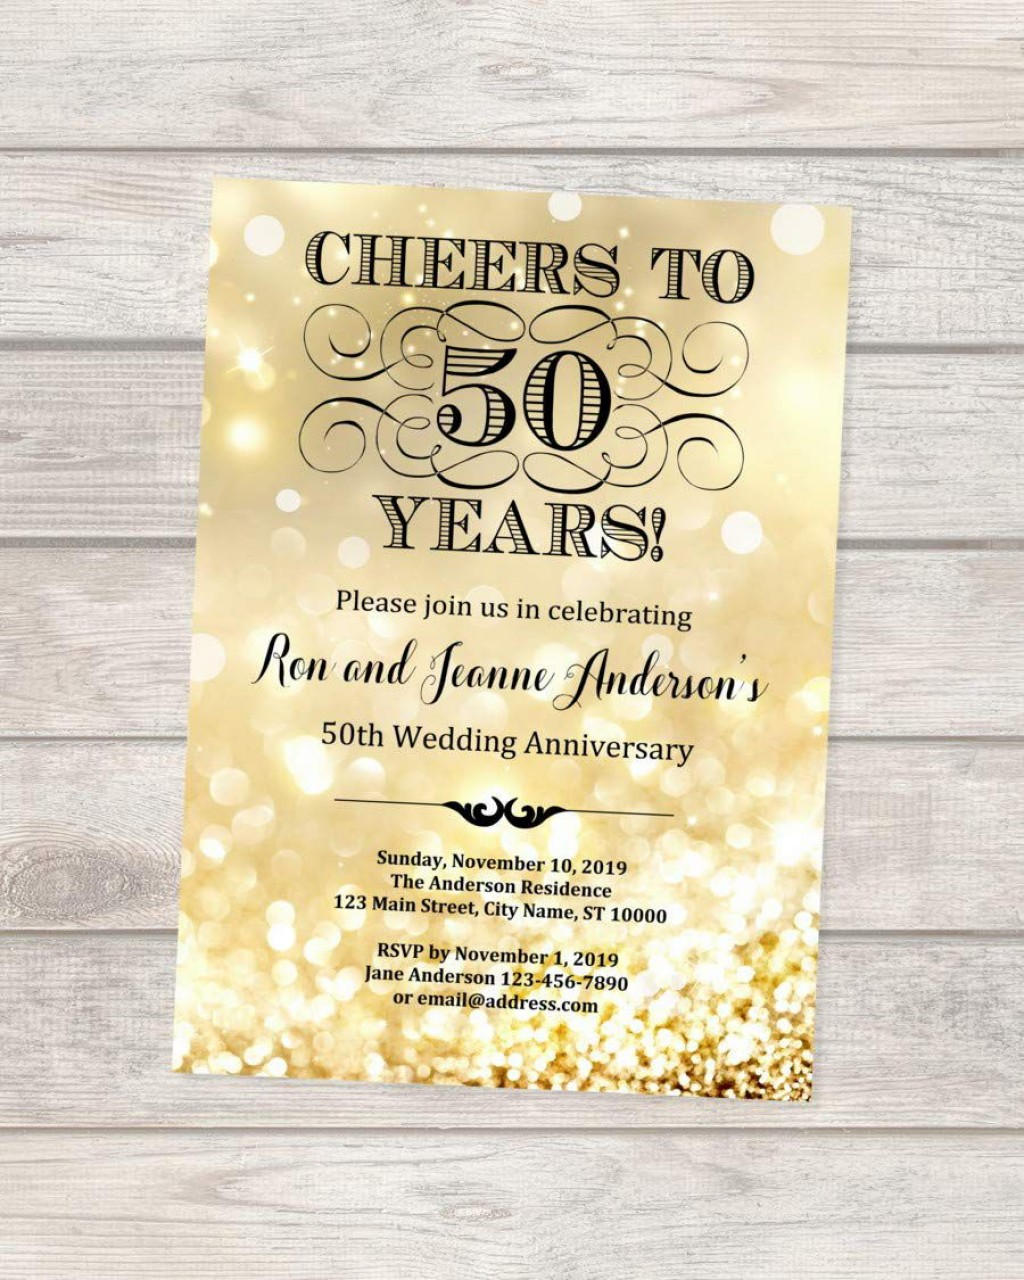 004 Shocking 50th Anniversary Invitation Design Concept  Designs Wedding Template Microsoft Word Surprise Party Wording Card IdeaLarge